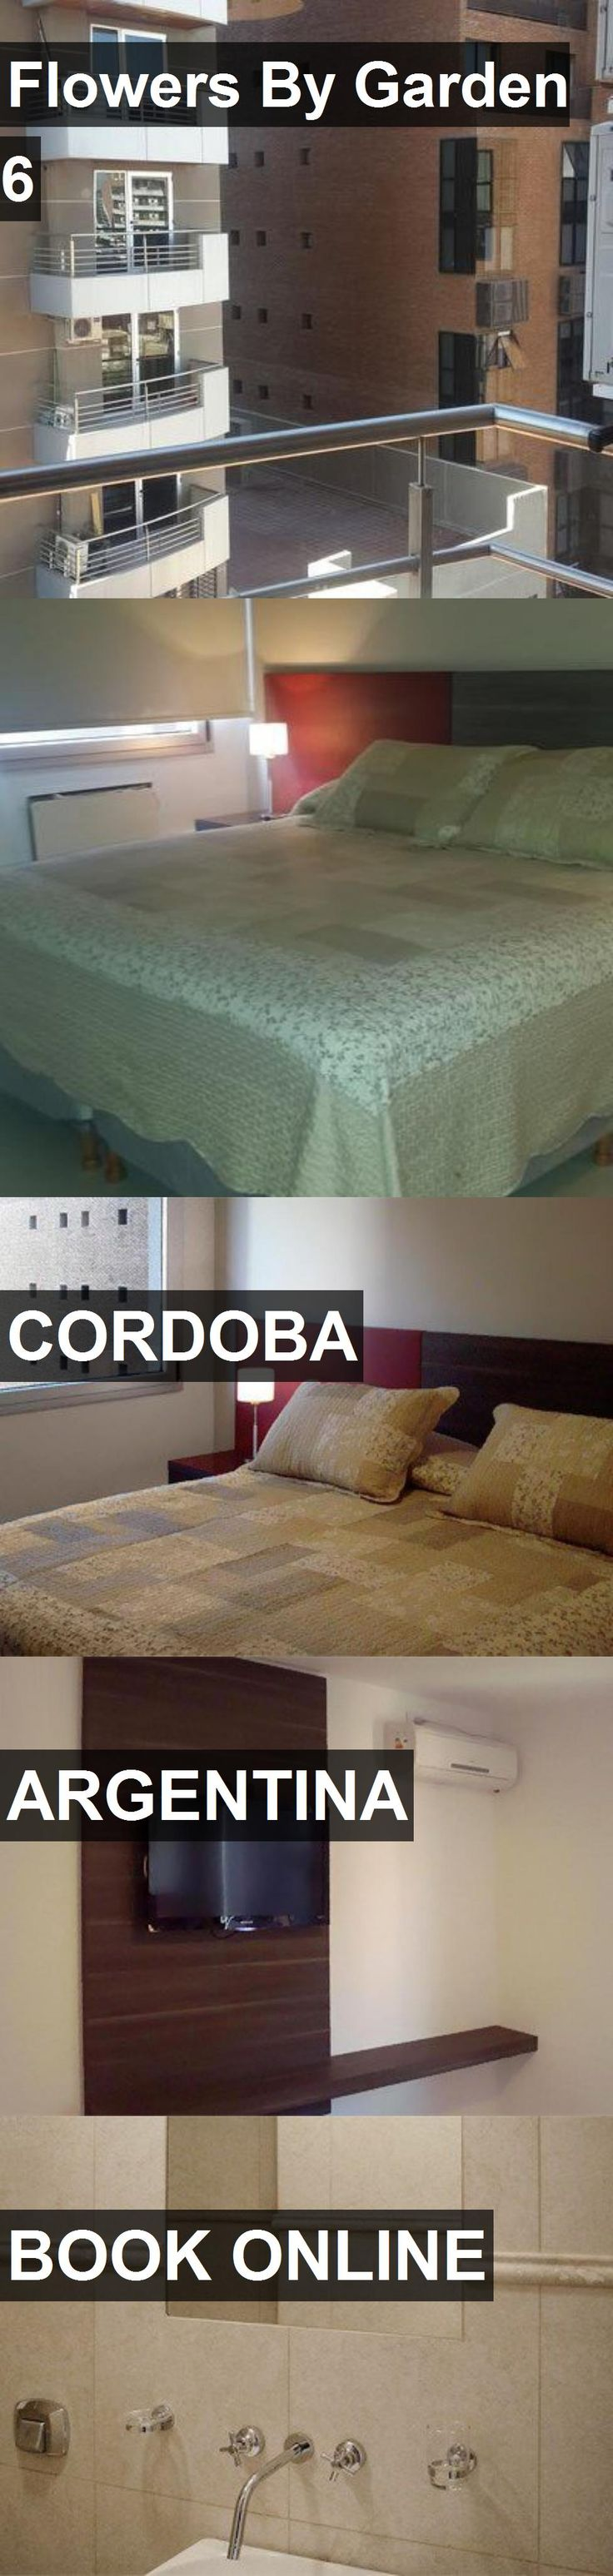 Hotel Flowers By Garden 6 in Cordoba, Argentina. For more information, photos, reviews and best prices please follow the link. #Argentina #Cordoba #travel #vacation #hotel